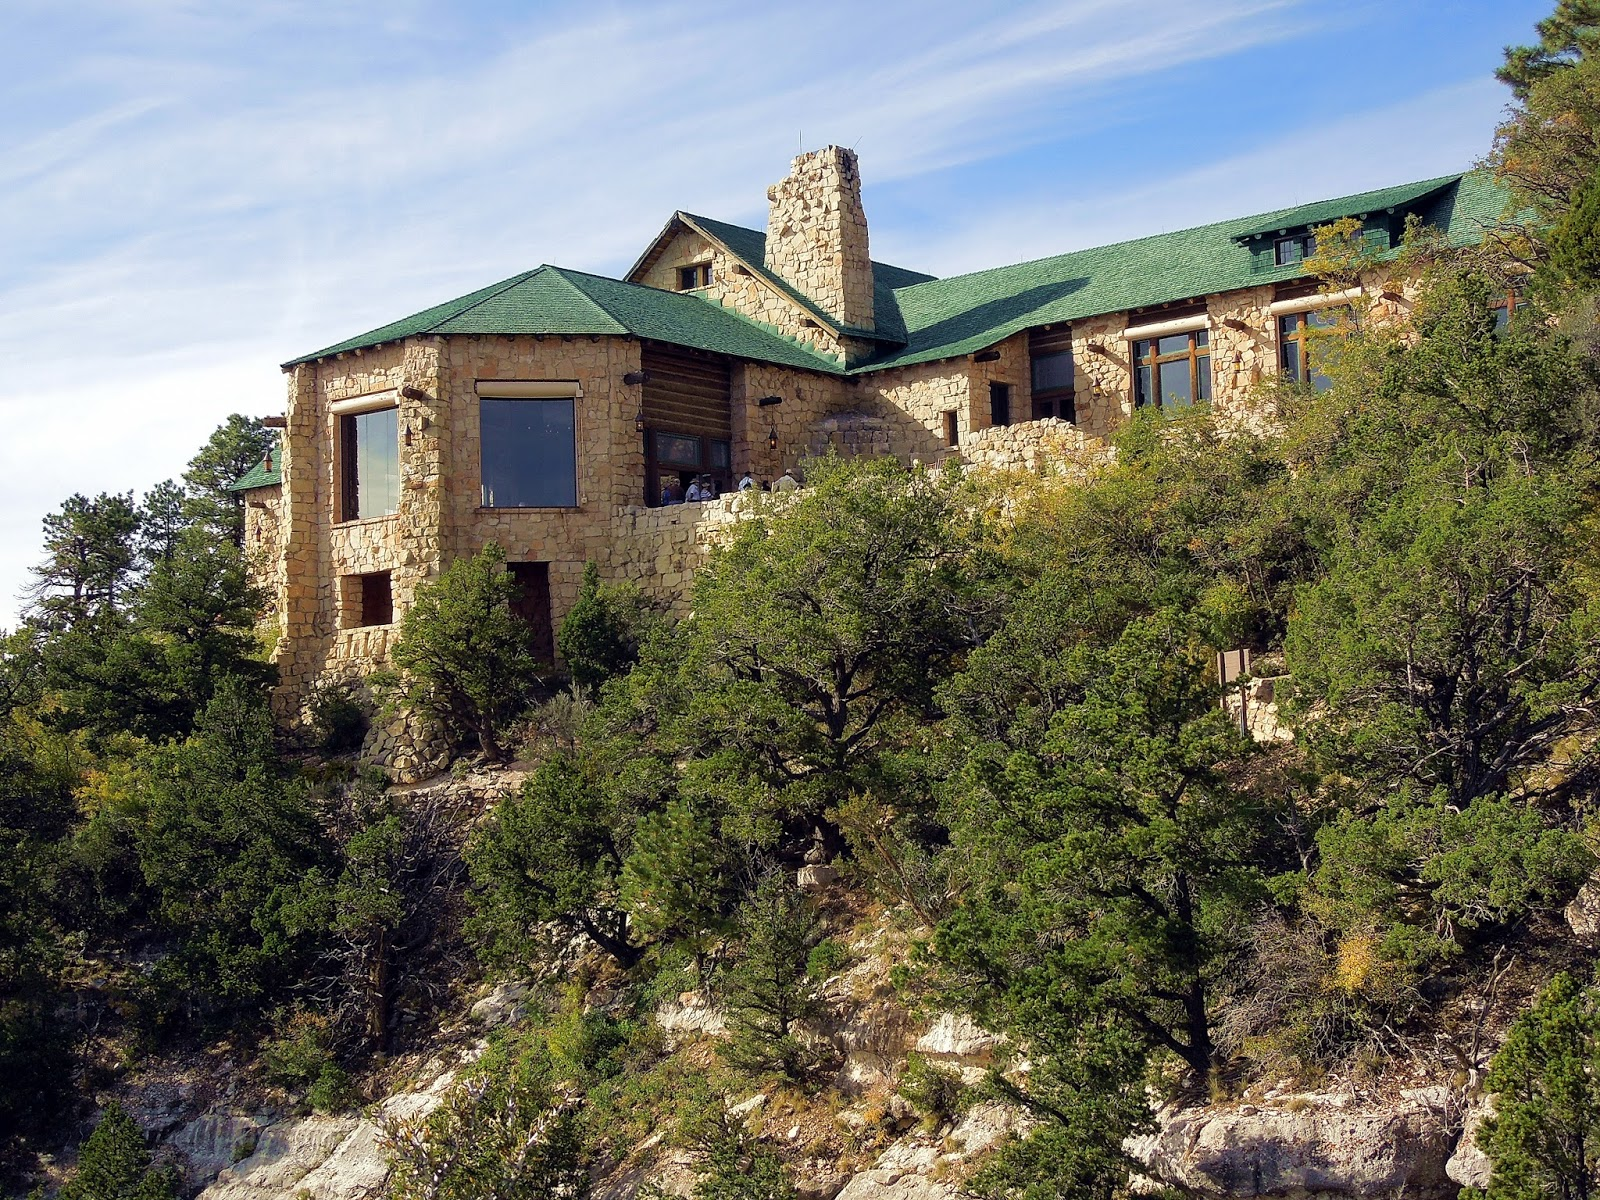 grand north cabins frontier photo in stock rim canyon lodge